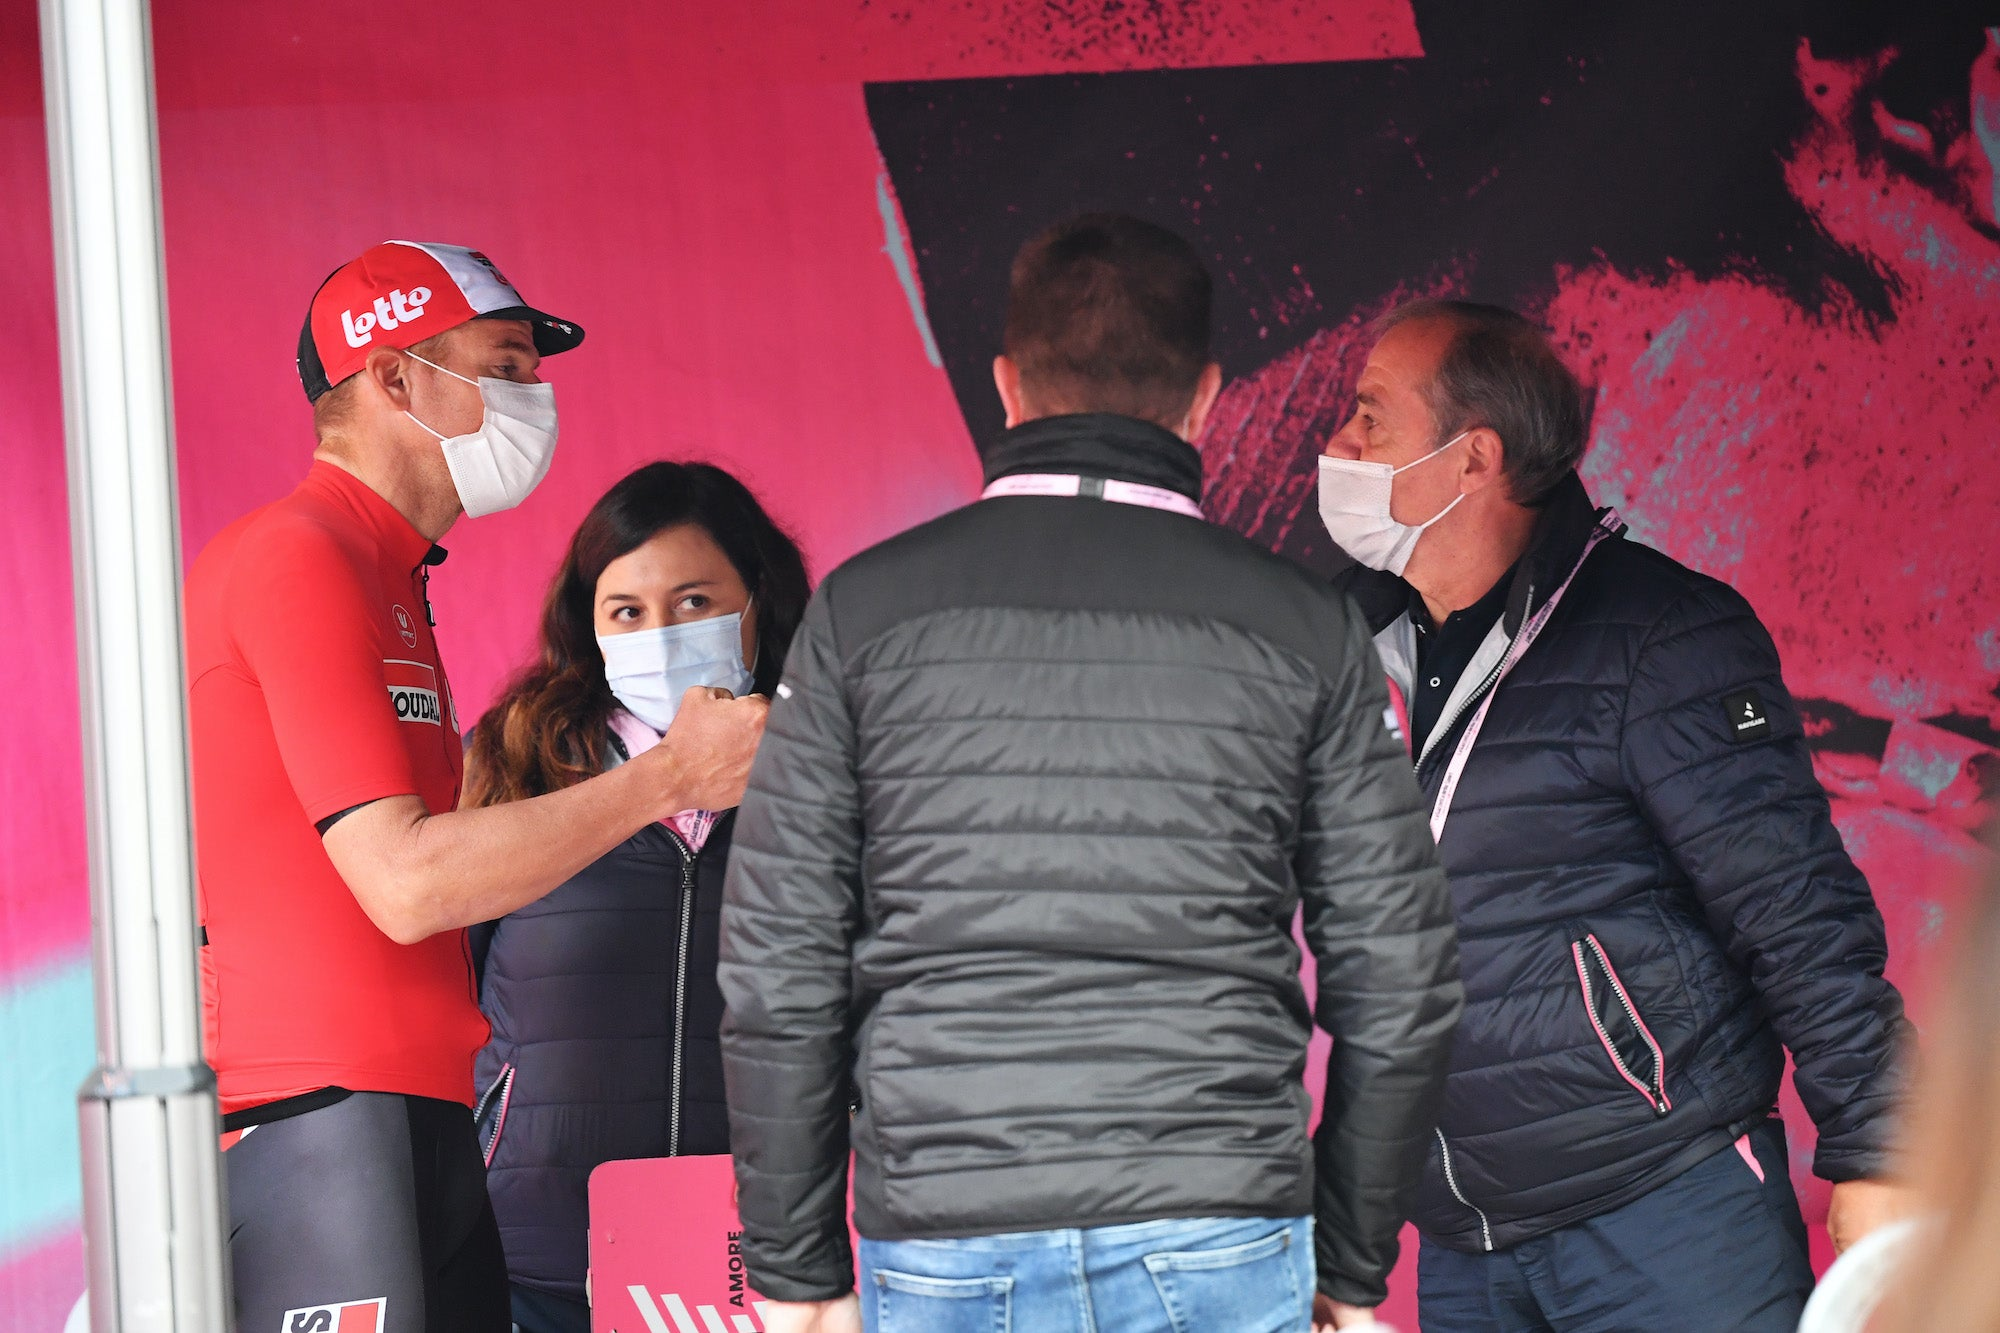 Riders' group addresses Giro d'Italia organizers in open letter: 'We are not heroes but men' – VeloNews.com